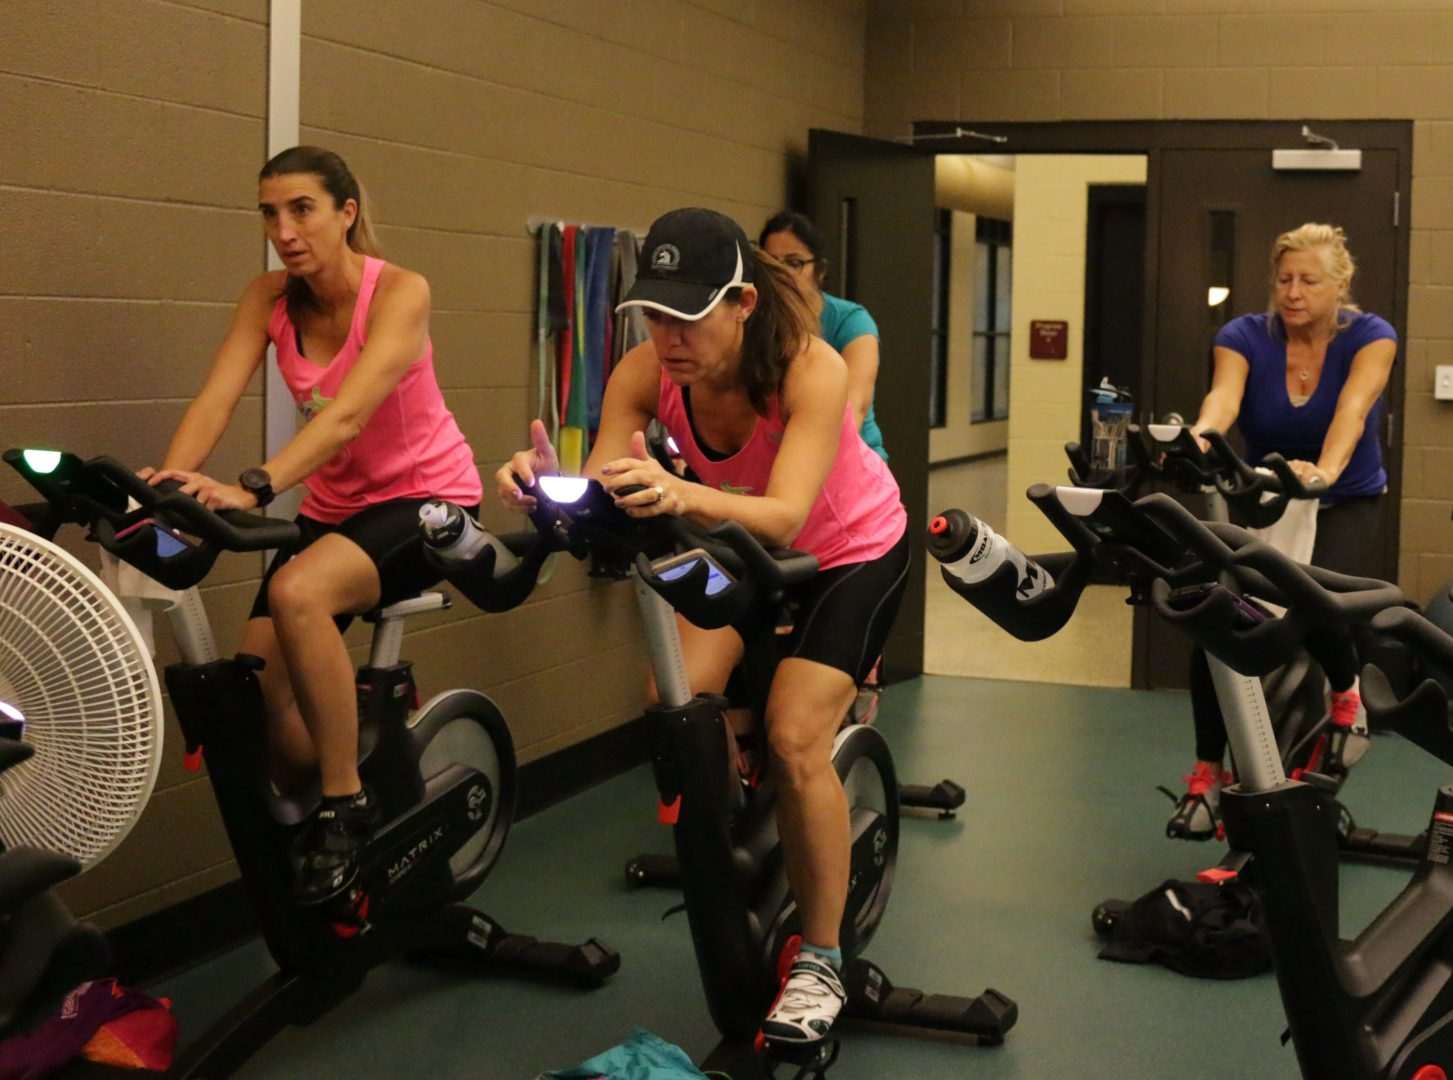 Indoor cycling in Franklin, TN and Williamson County, exercise for teens and adults, family activities and more.